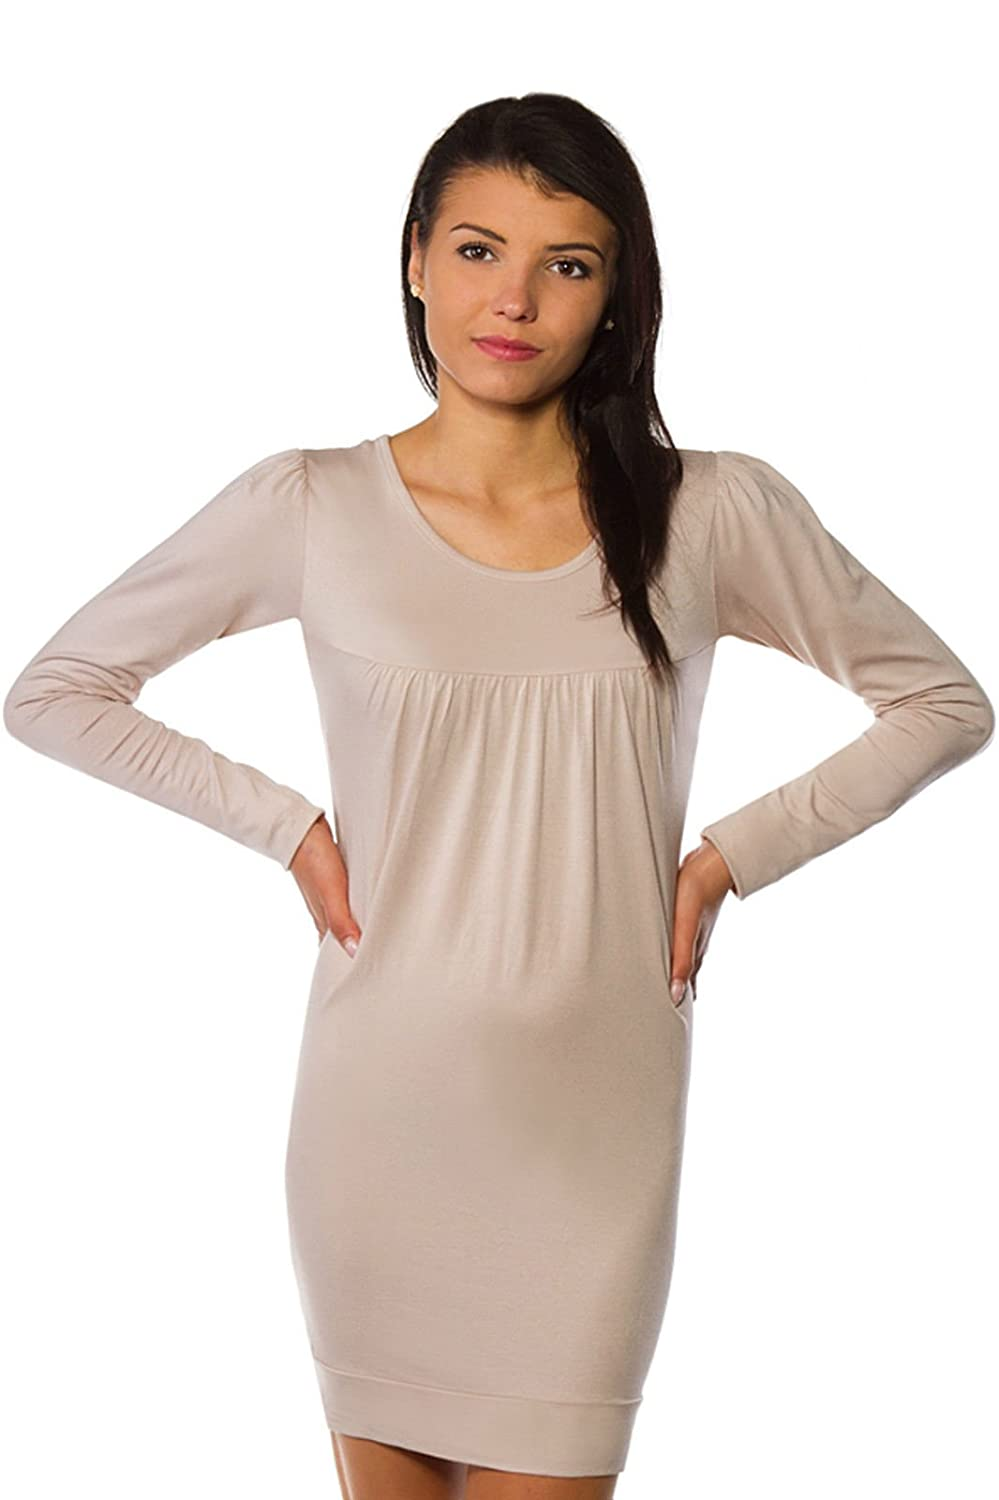 Fancy That Clothing Frauen Tunika Top Minikleid Long Top modische stilvolle Sexy 36 38 40